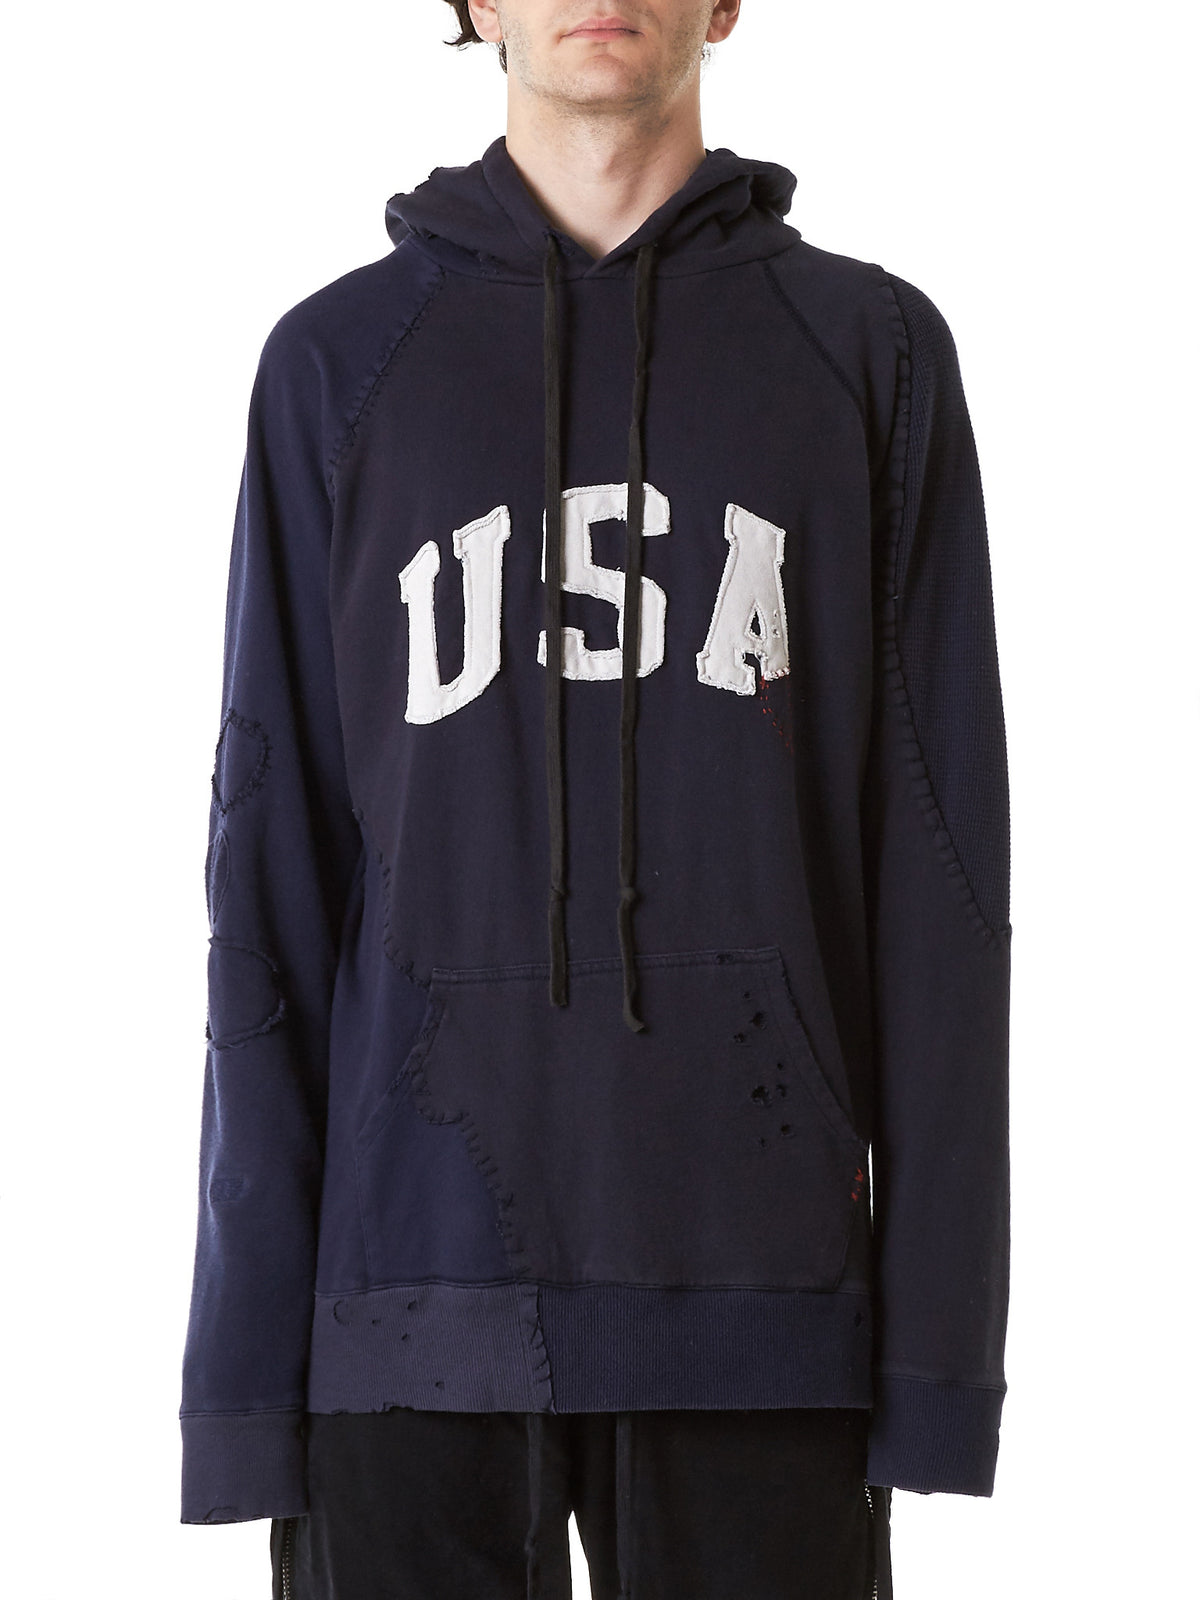 Destroyed 'USA' Hoodie (GLSS17-M050-NAVY) - H. Lorenzo